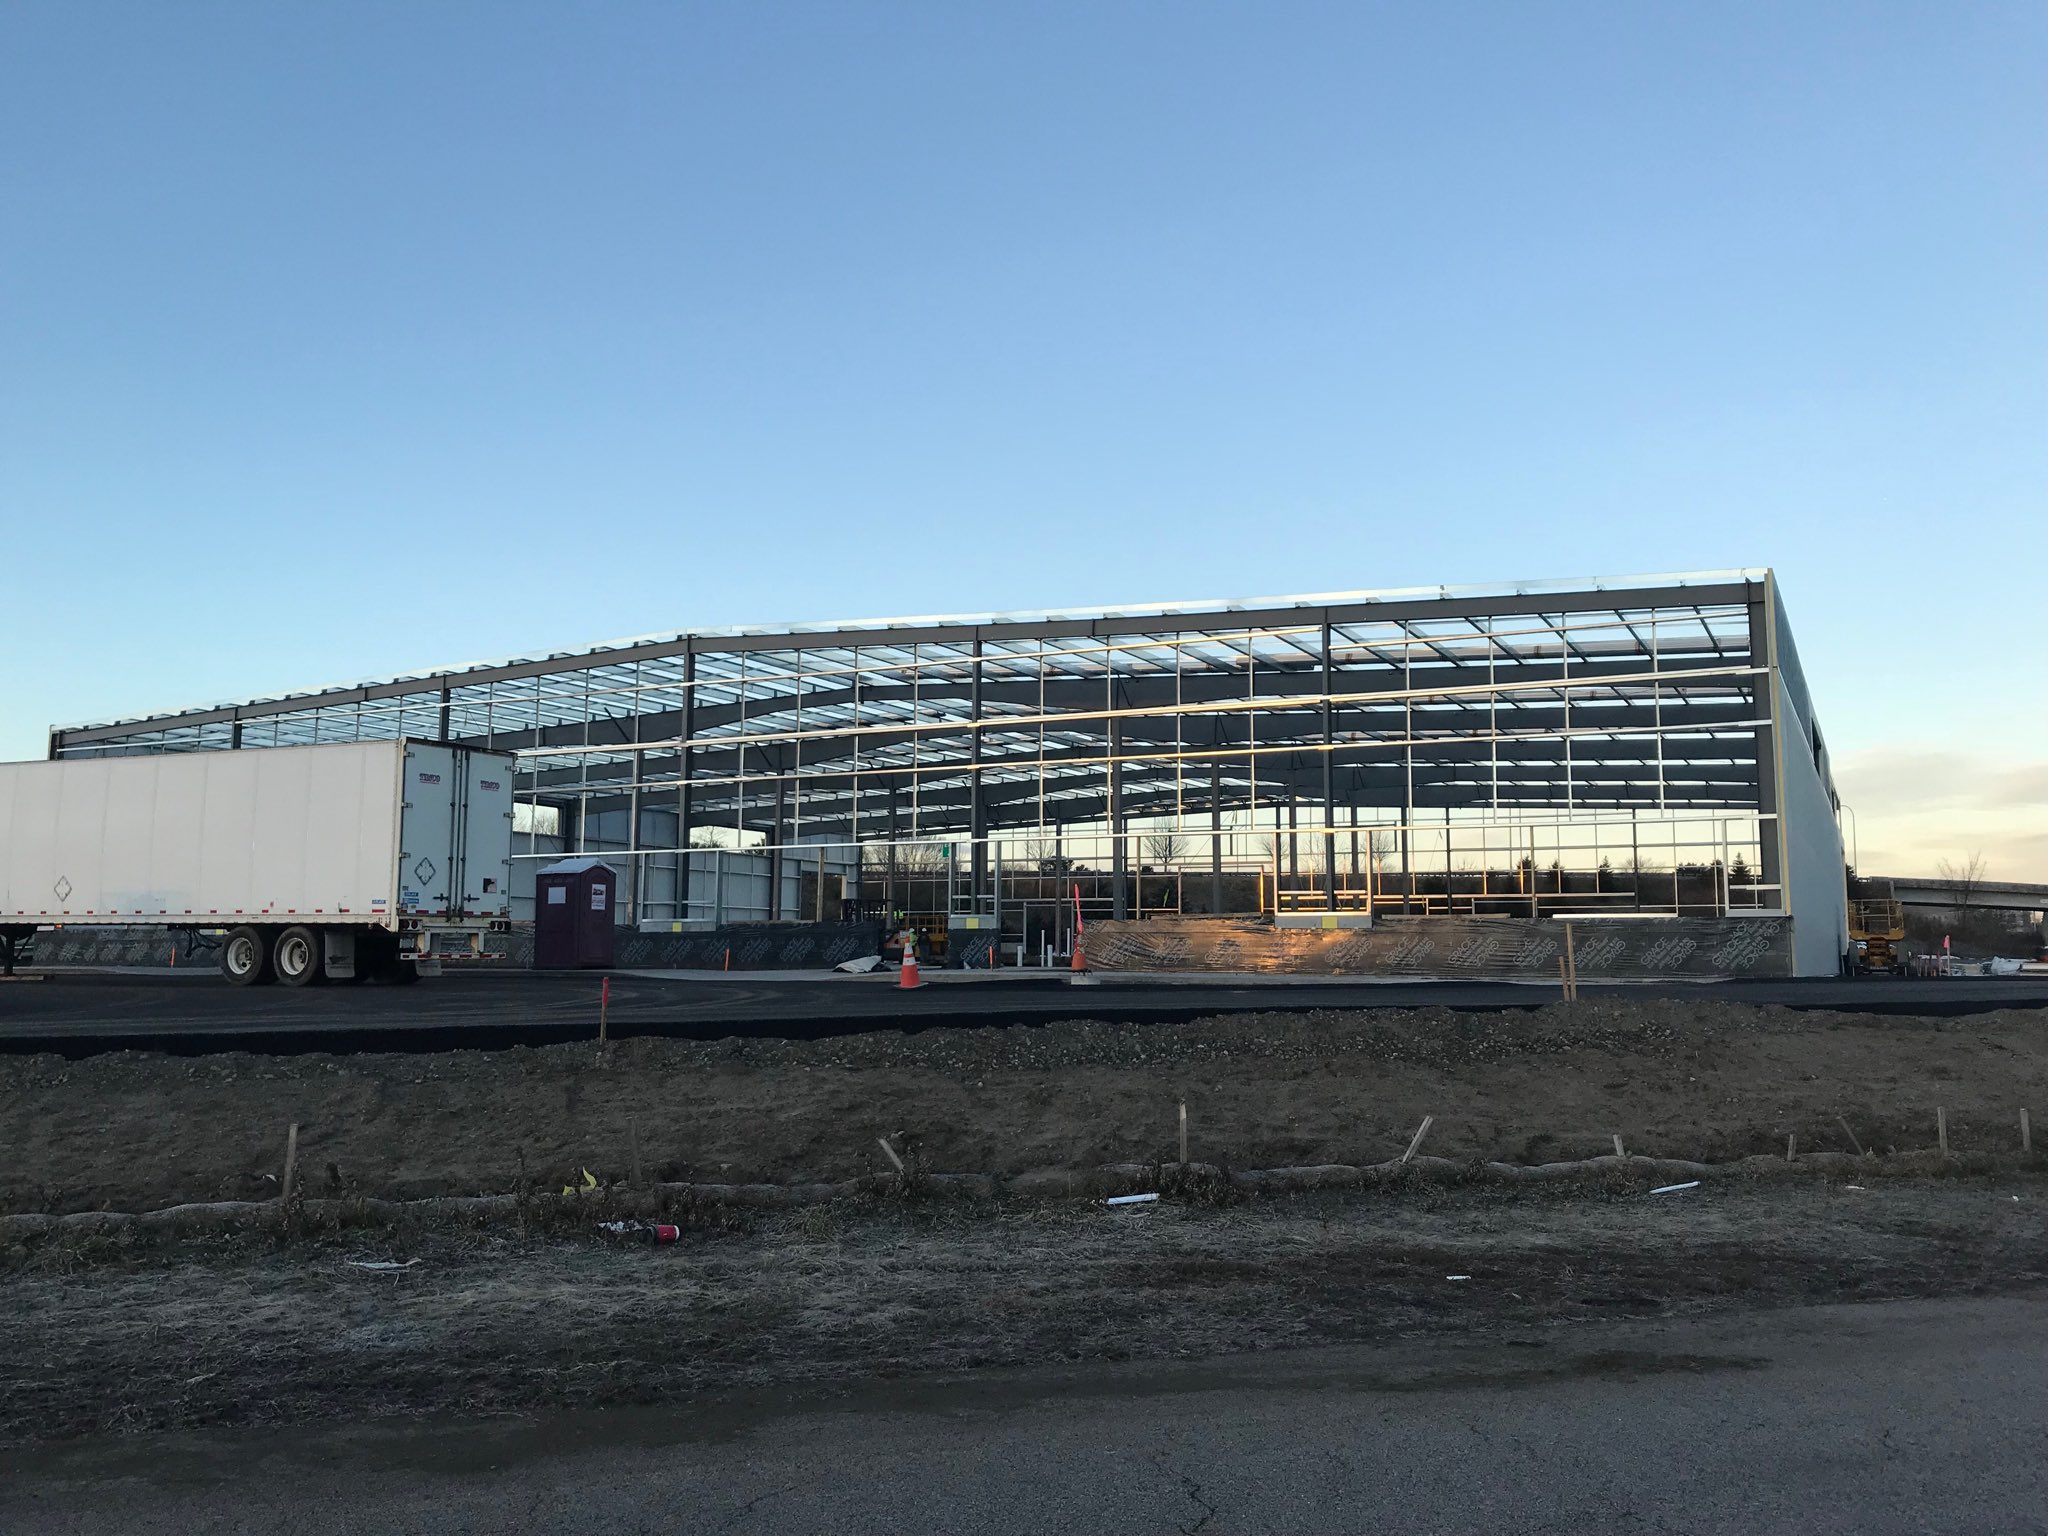 A new campus of flexible industrial and warehouse space is under construction at Quonset Business Park./STEVEN KING